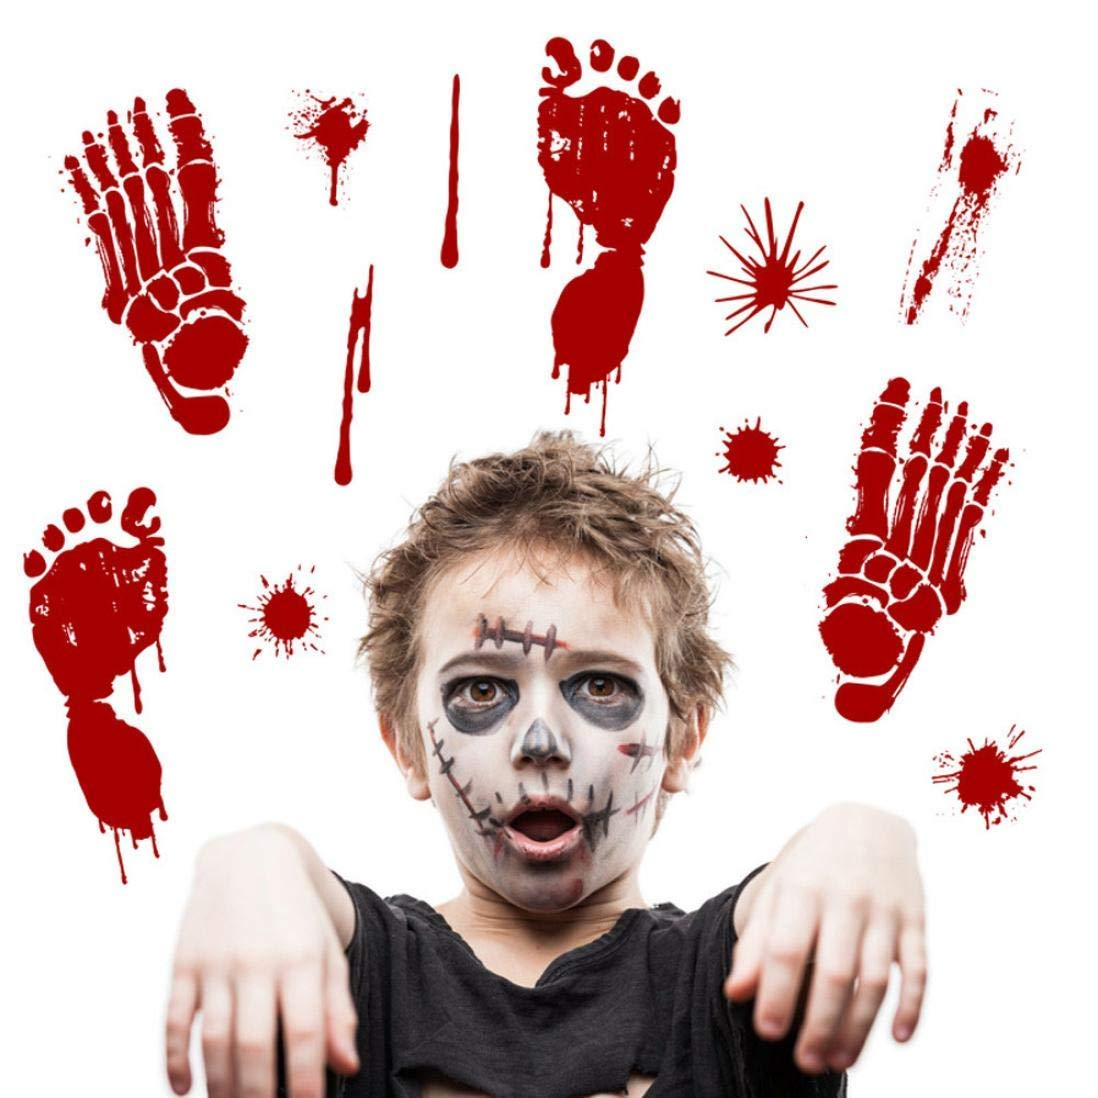 Rumas Bloody Footprints Halloween Party Decoration - Footprint Stickers Floor Stickers - Blood Splatter DIY Wall Murals Decor - Removable Waterproof Wall Decals Cling Halloween Zombie Decor Decals (B)